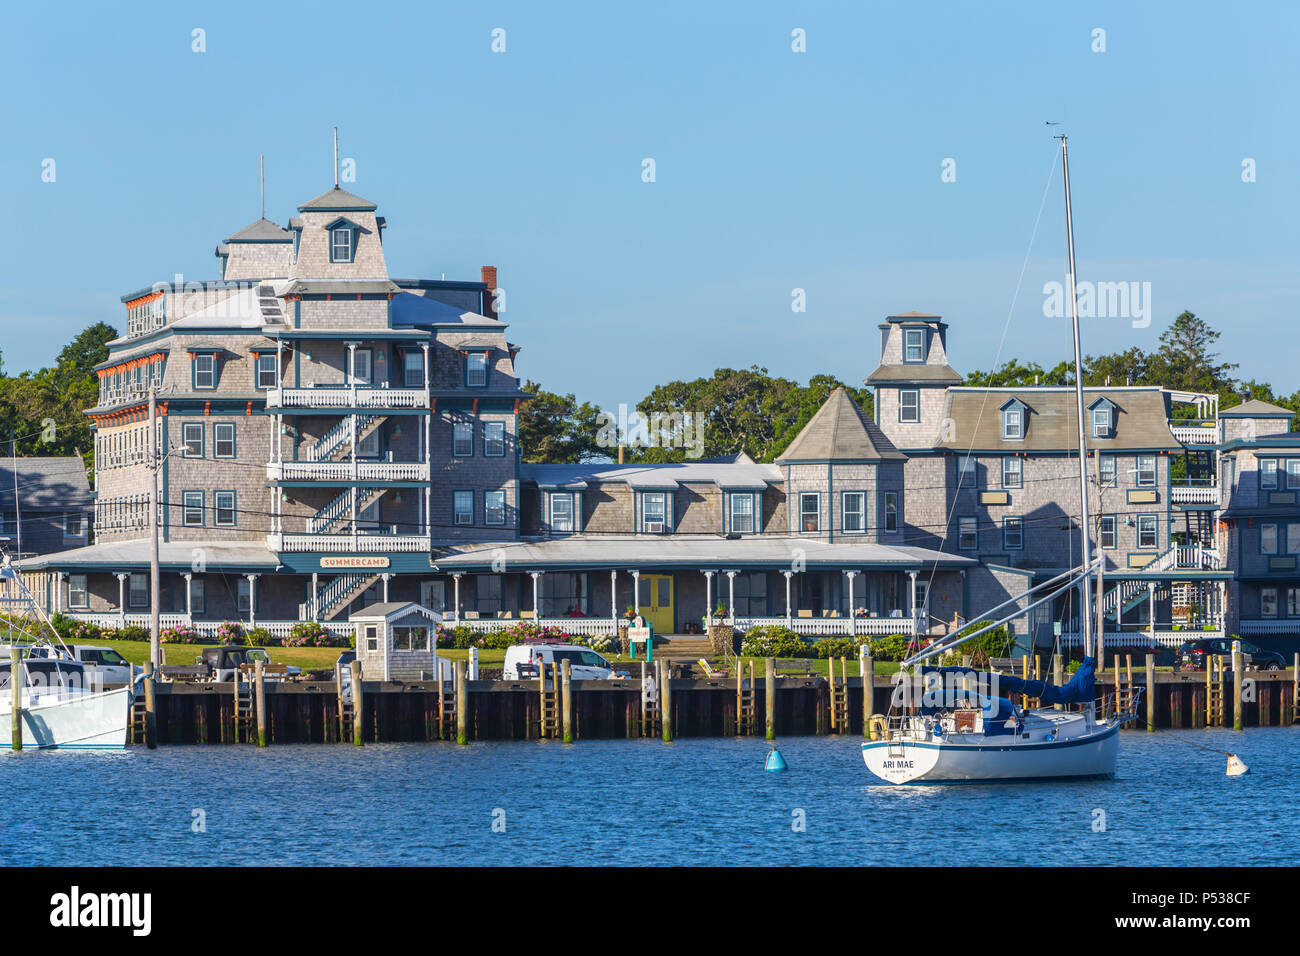 The Summercamp hotel (formerly the Wesley hotel) overlooks the harbor in Oak Bluffs, Massachusetts on Martha's Vineyard. - Stock Image